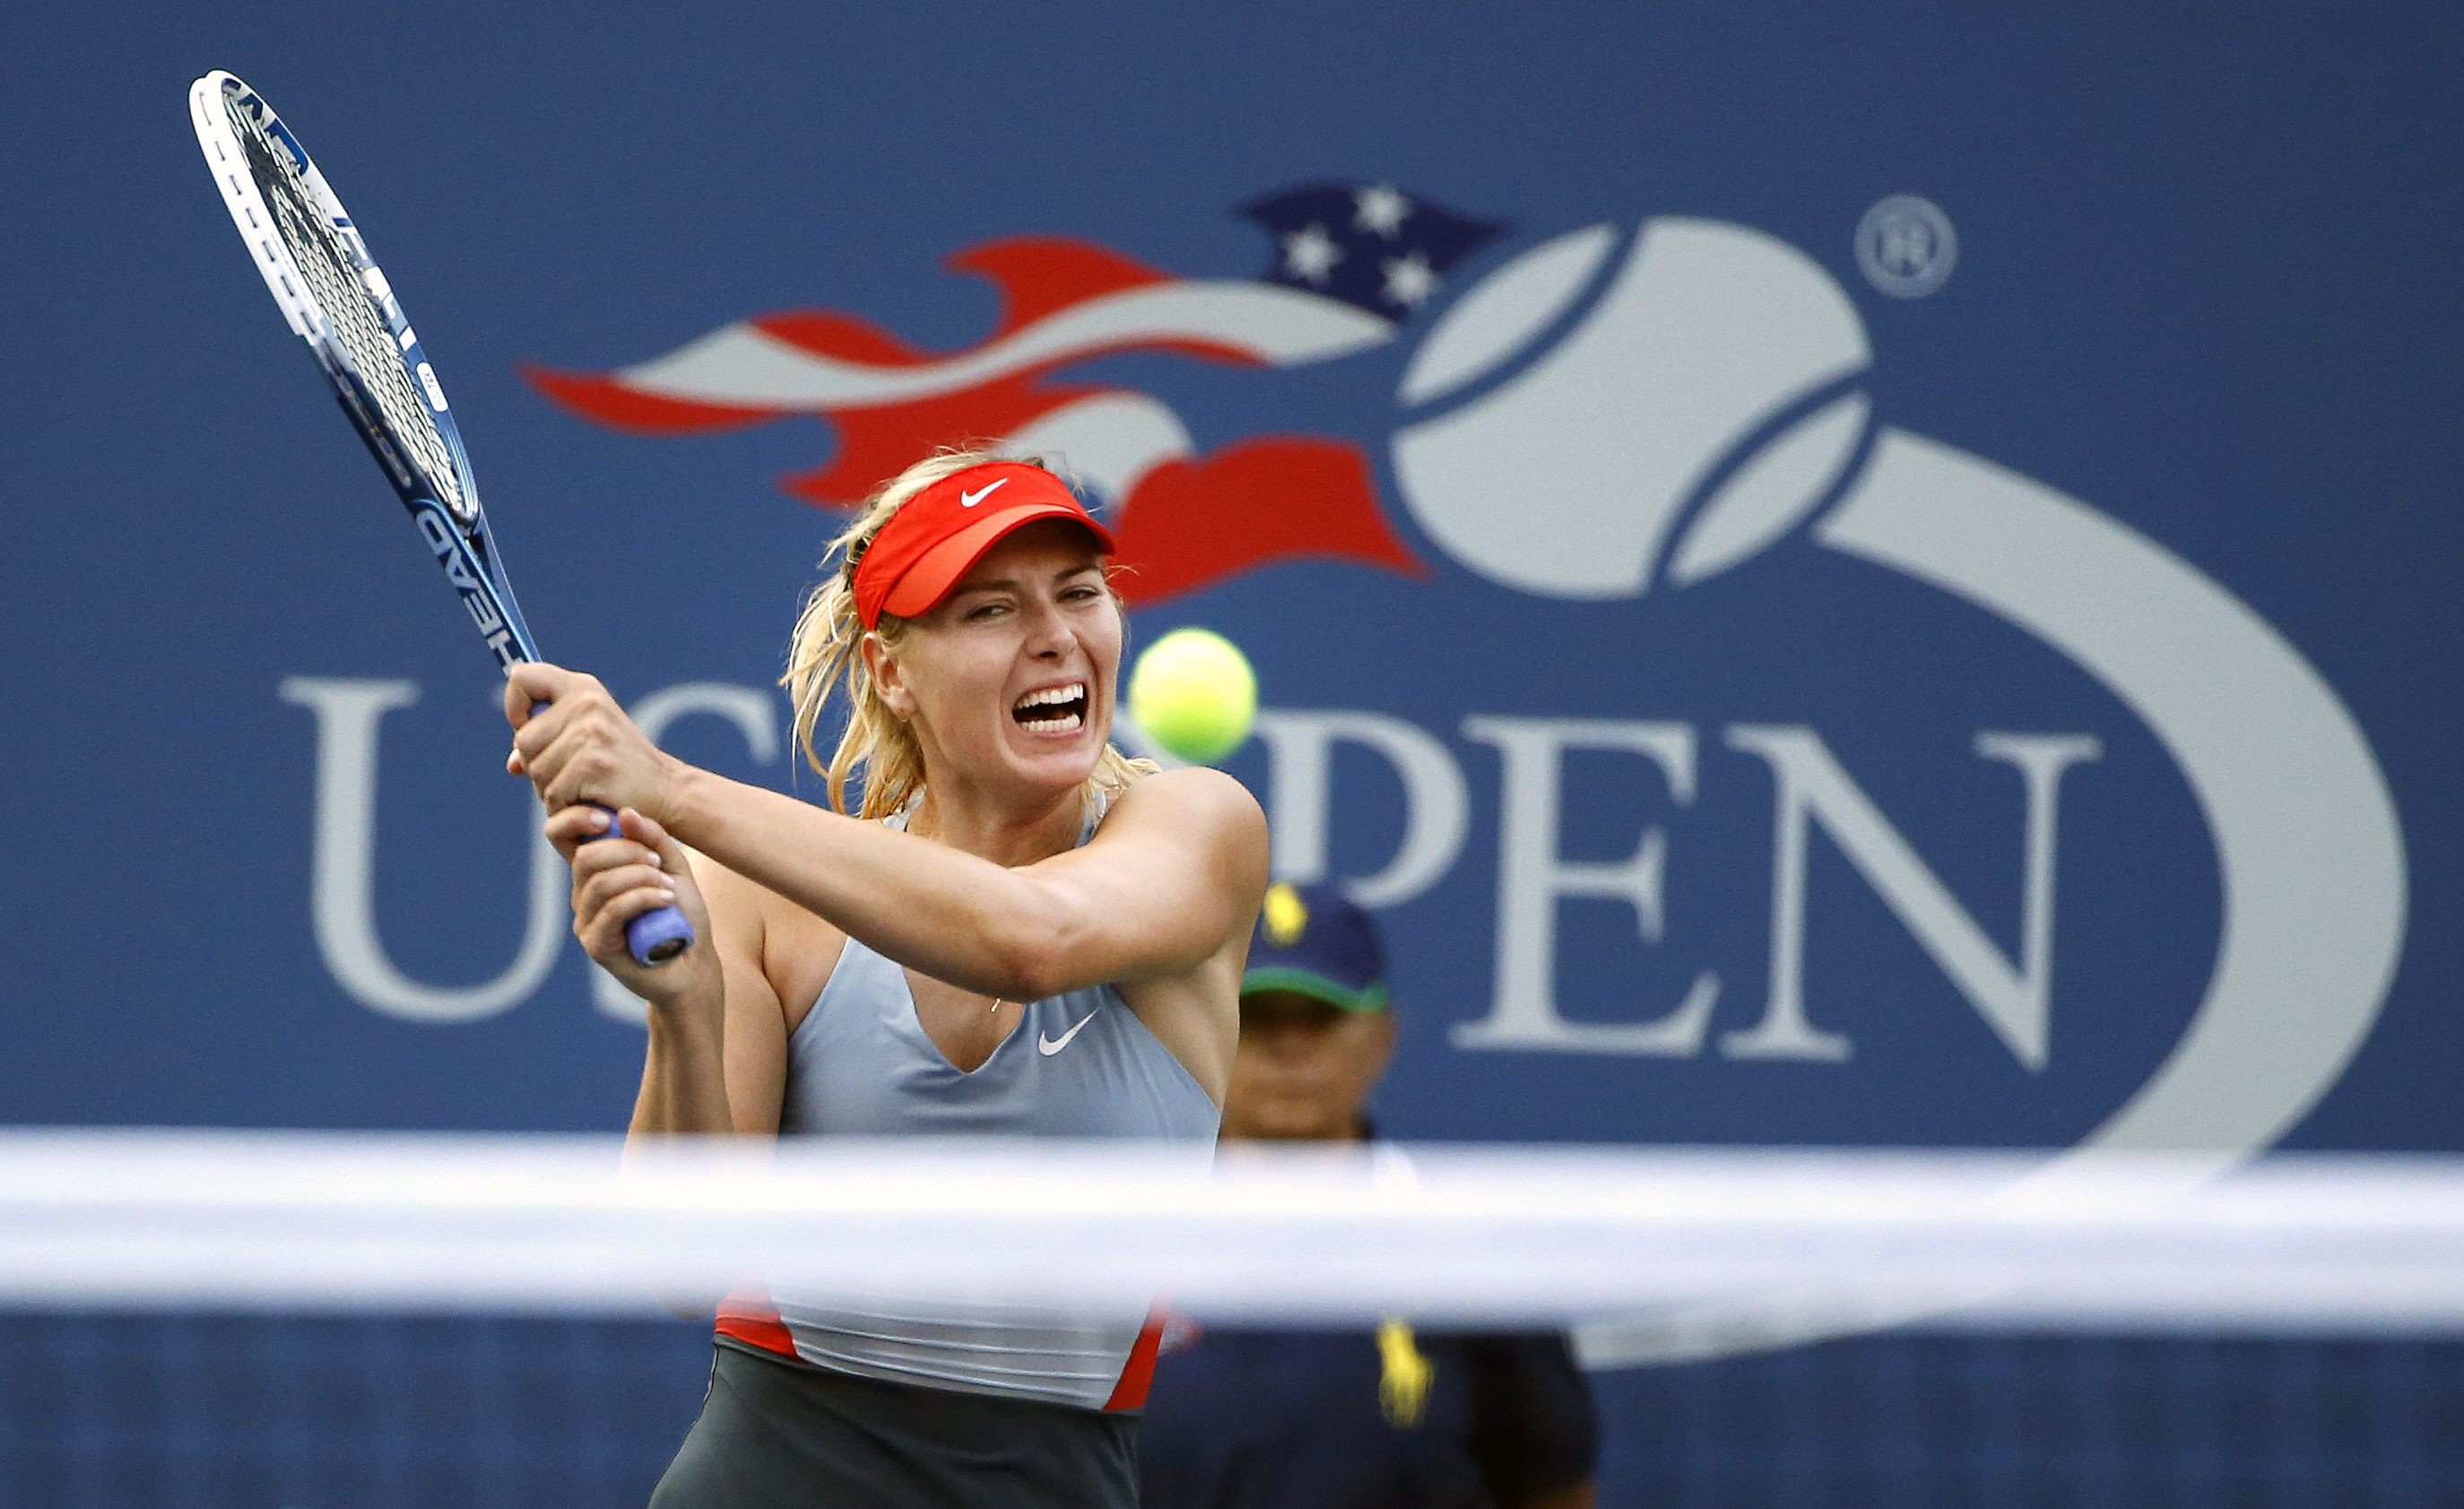 Maria Sharapova, of Russia, returns a shot to Alexandra Dulgheru, of Romania, during the second round of the U.S. Open tennis tournament Wednesday, Aug. 27, 2014, in New York. (AP Photo/Jason DeCrow)